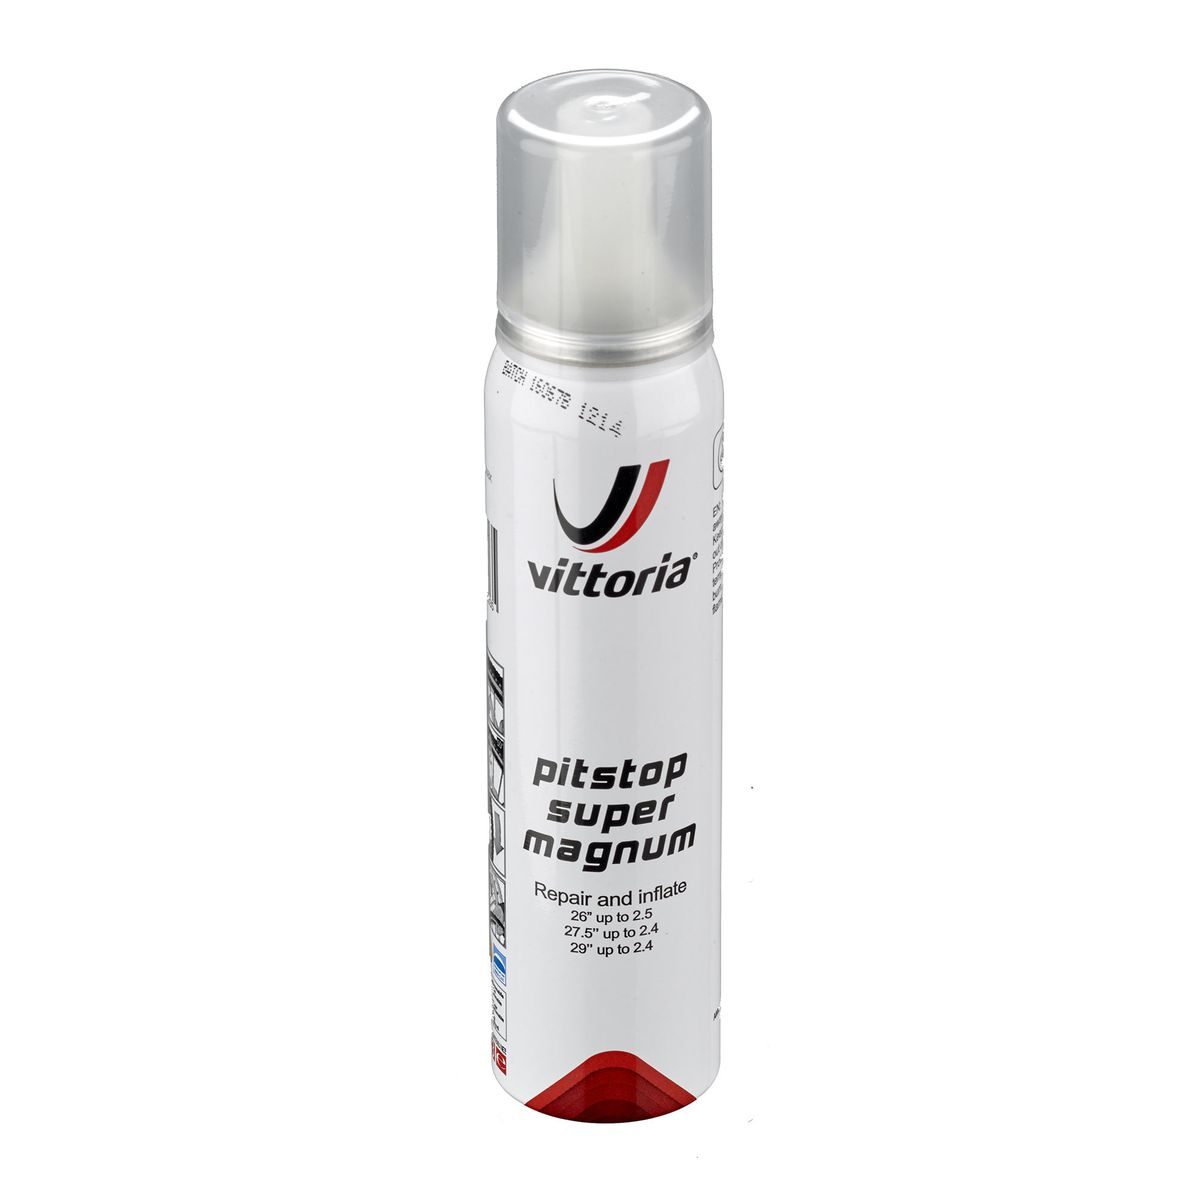 Pit Stop Super Magnum MTB puncture repair spray